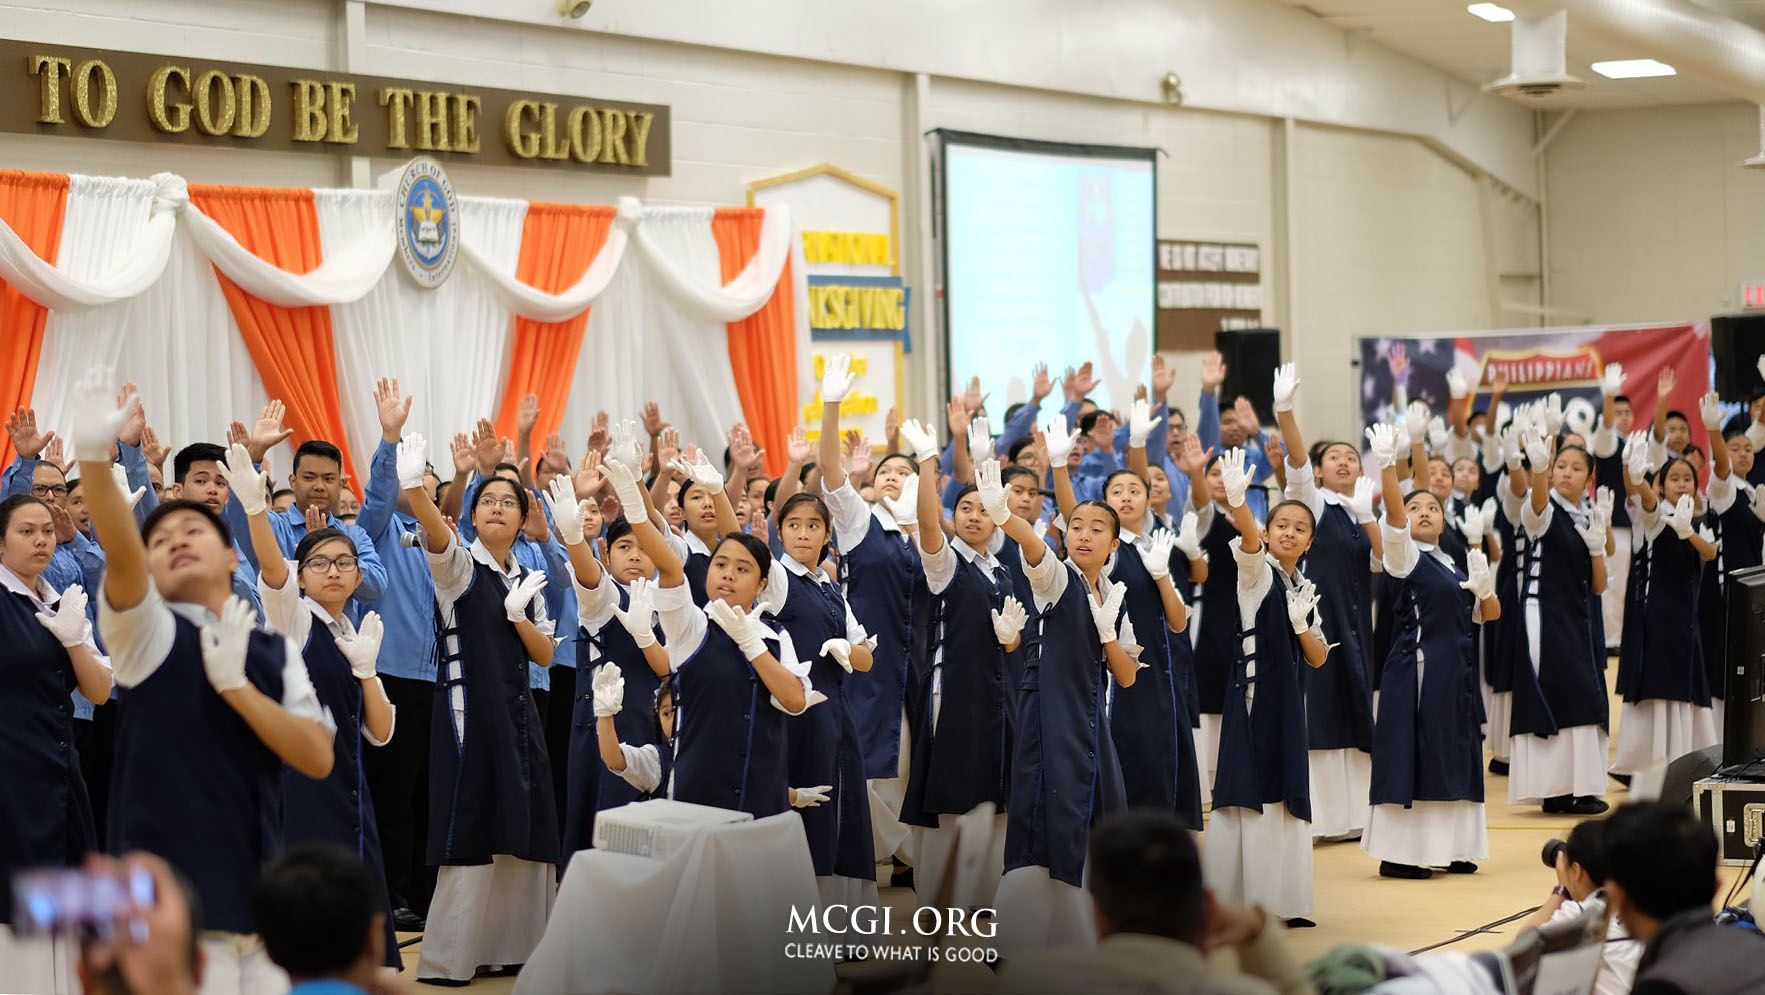 MCGI's Special Thanksgiving for 2nd Quarter of 2018 Highlights Good Works, Accurate Bible Translations